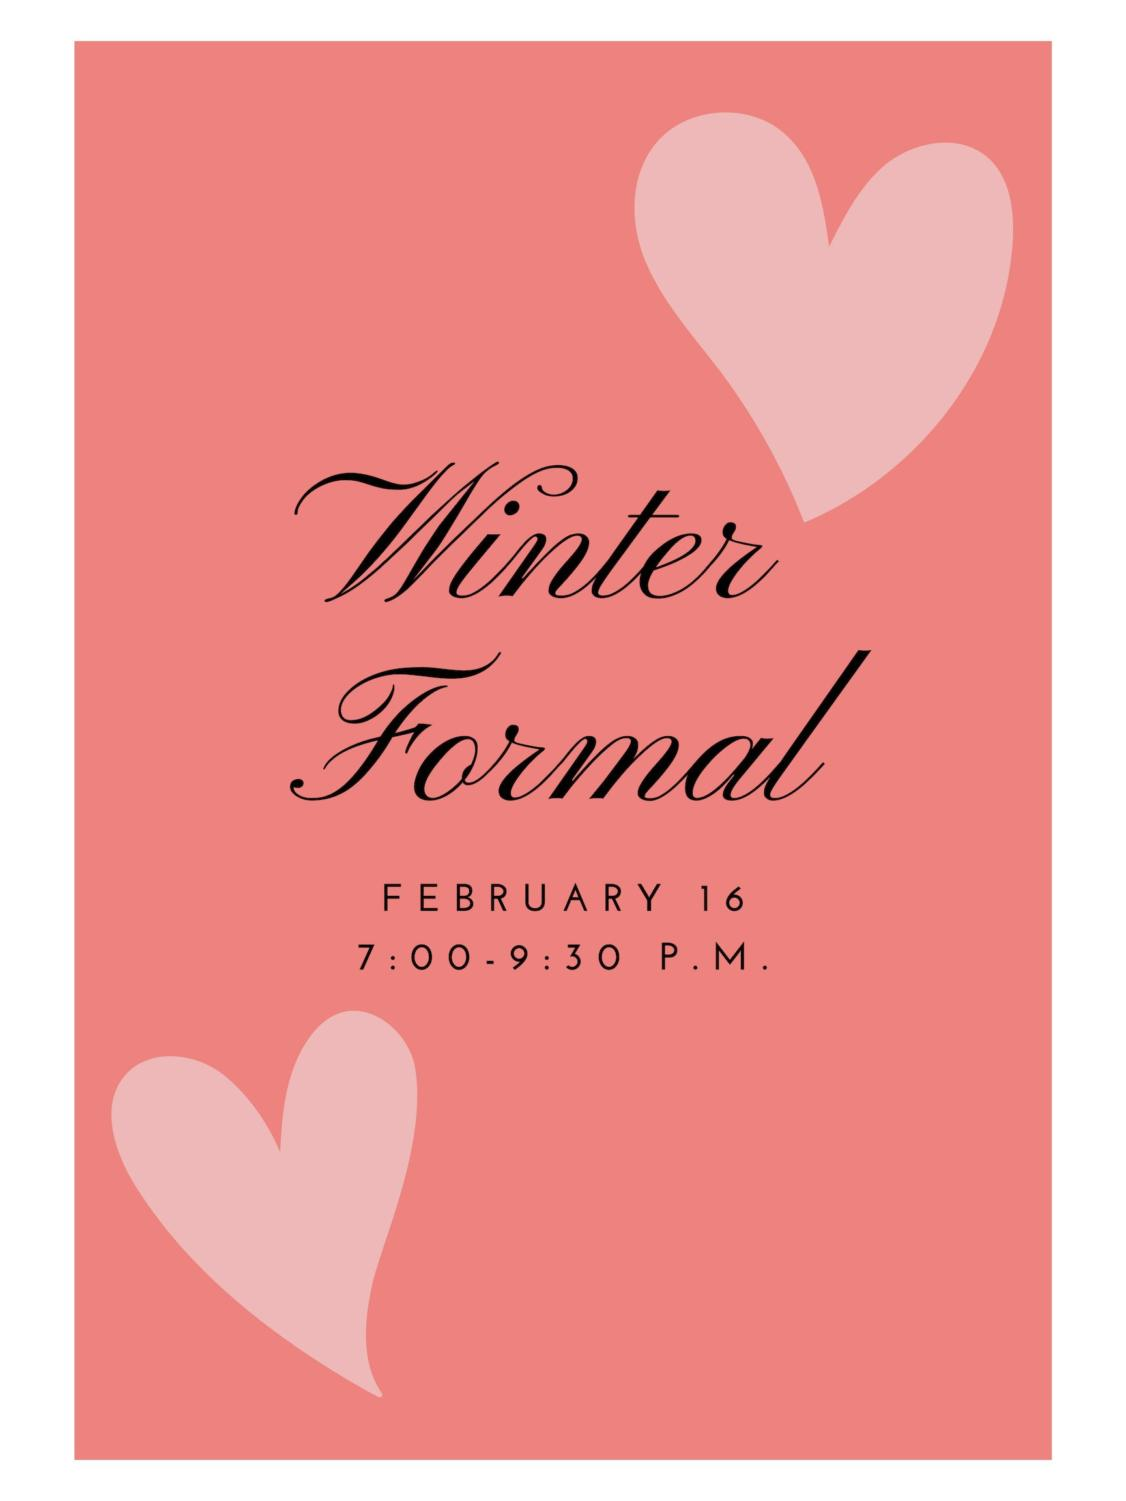 Liberty's winter formal is coming up and tickets will be on sale soon.